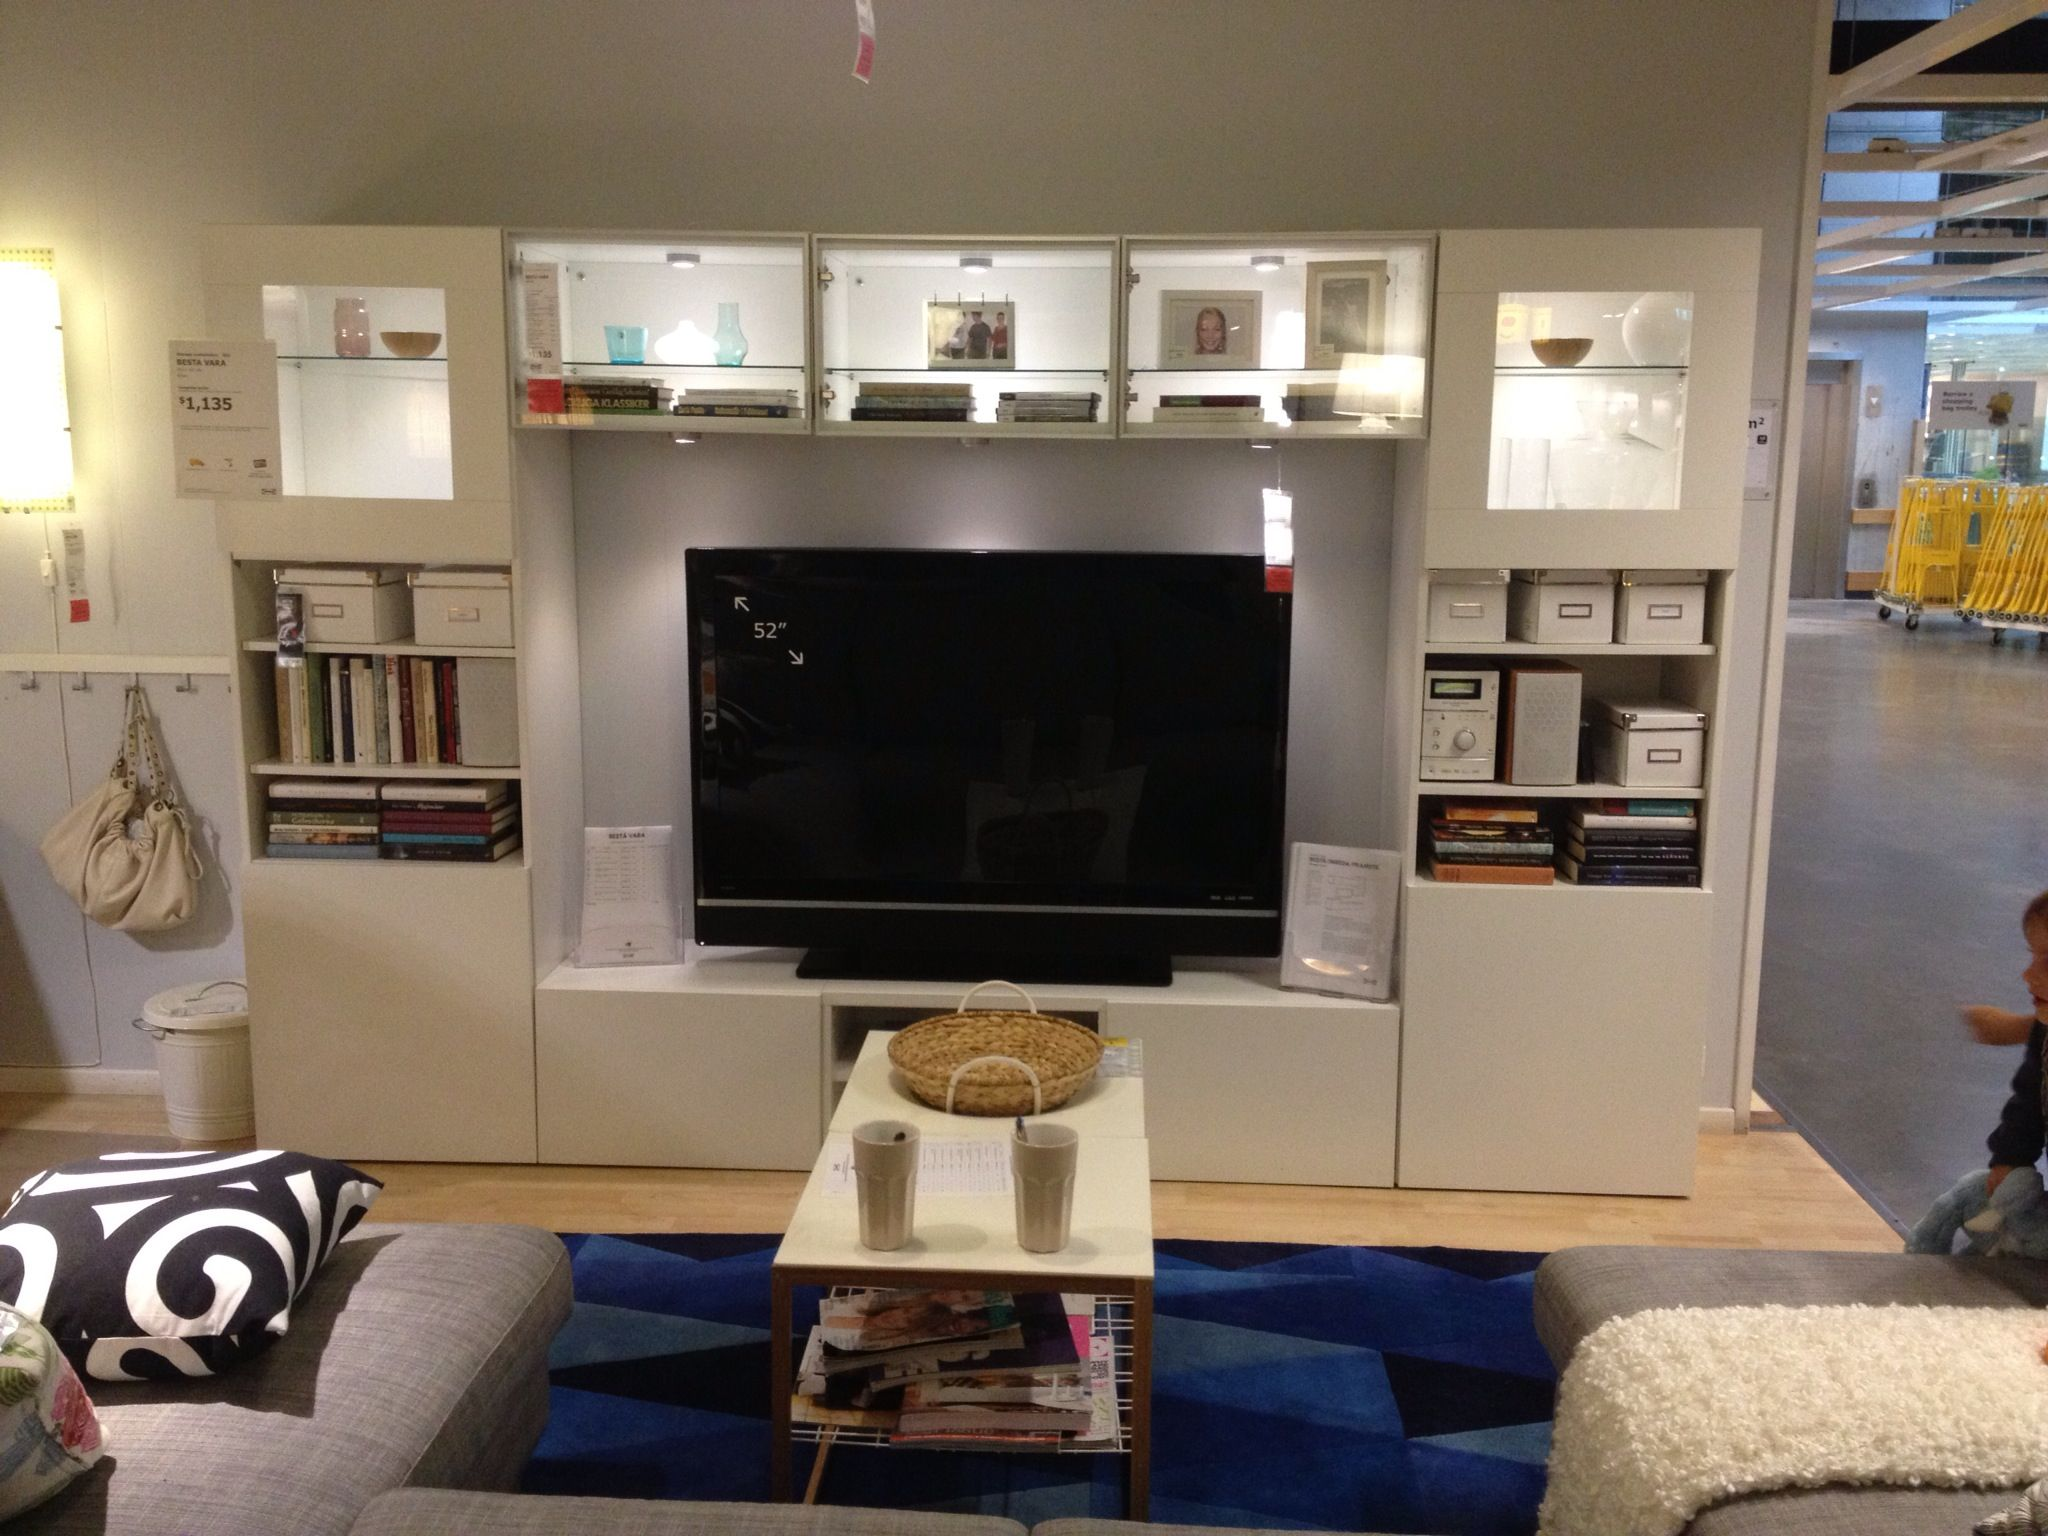 tv cabinet besta ikea ikea pinterest idee salon sous sols et salon. Black Bedroom Furniture Sets. Home Design Ideas